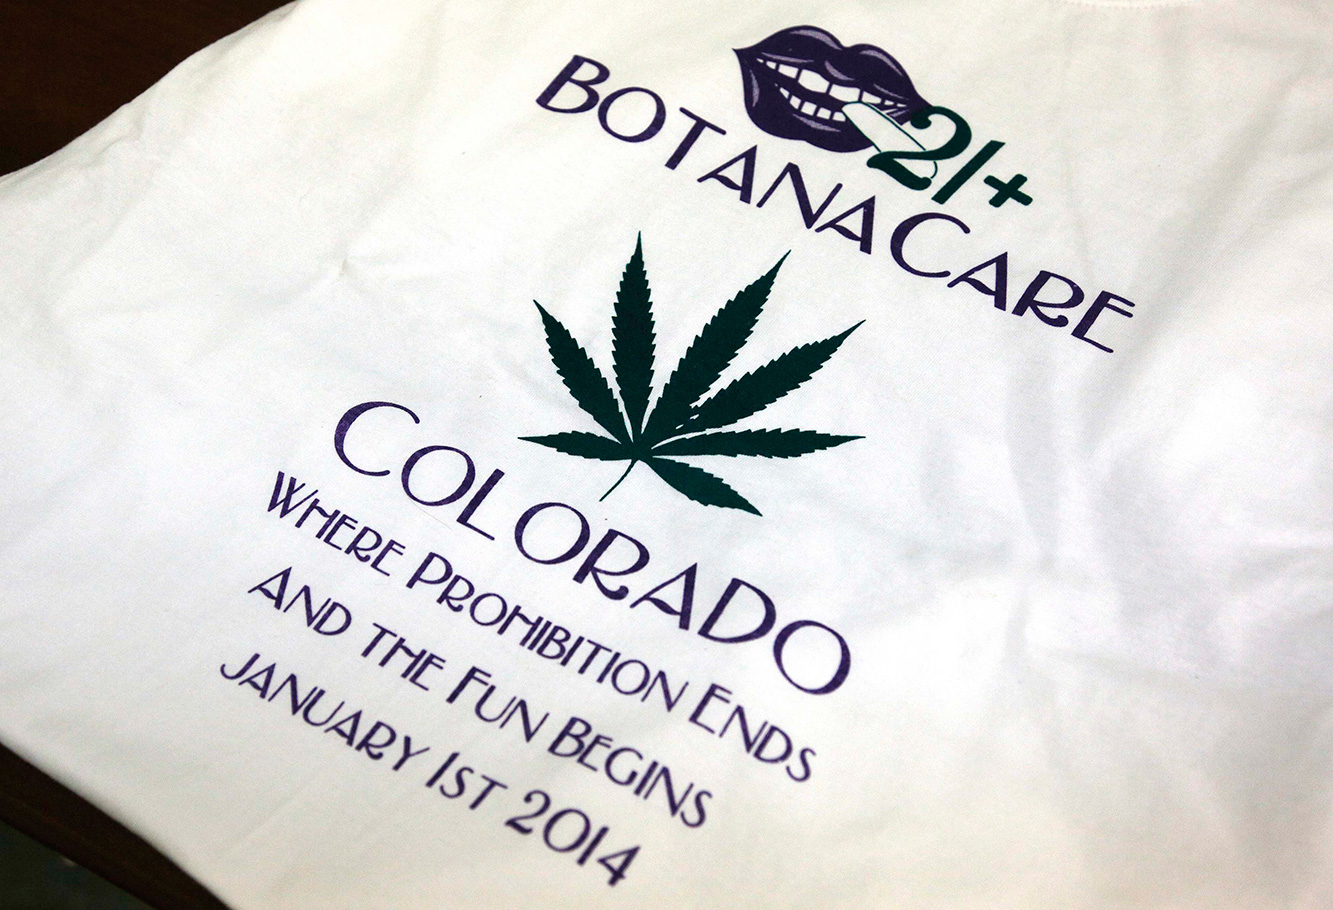 Legalización en Colorado crearía tendencia: The Washington Post